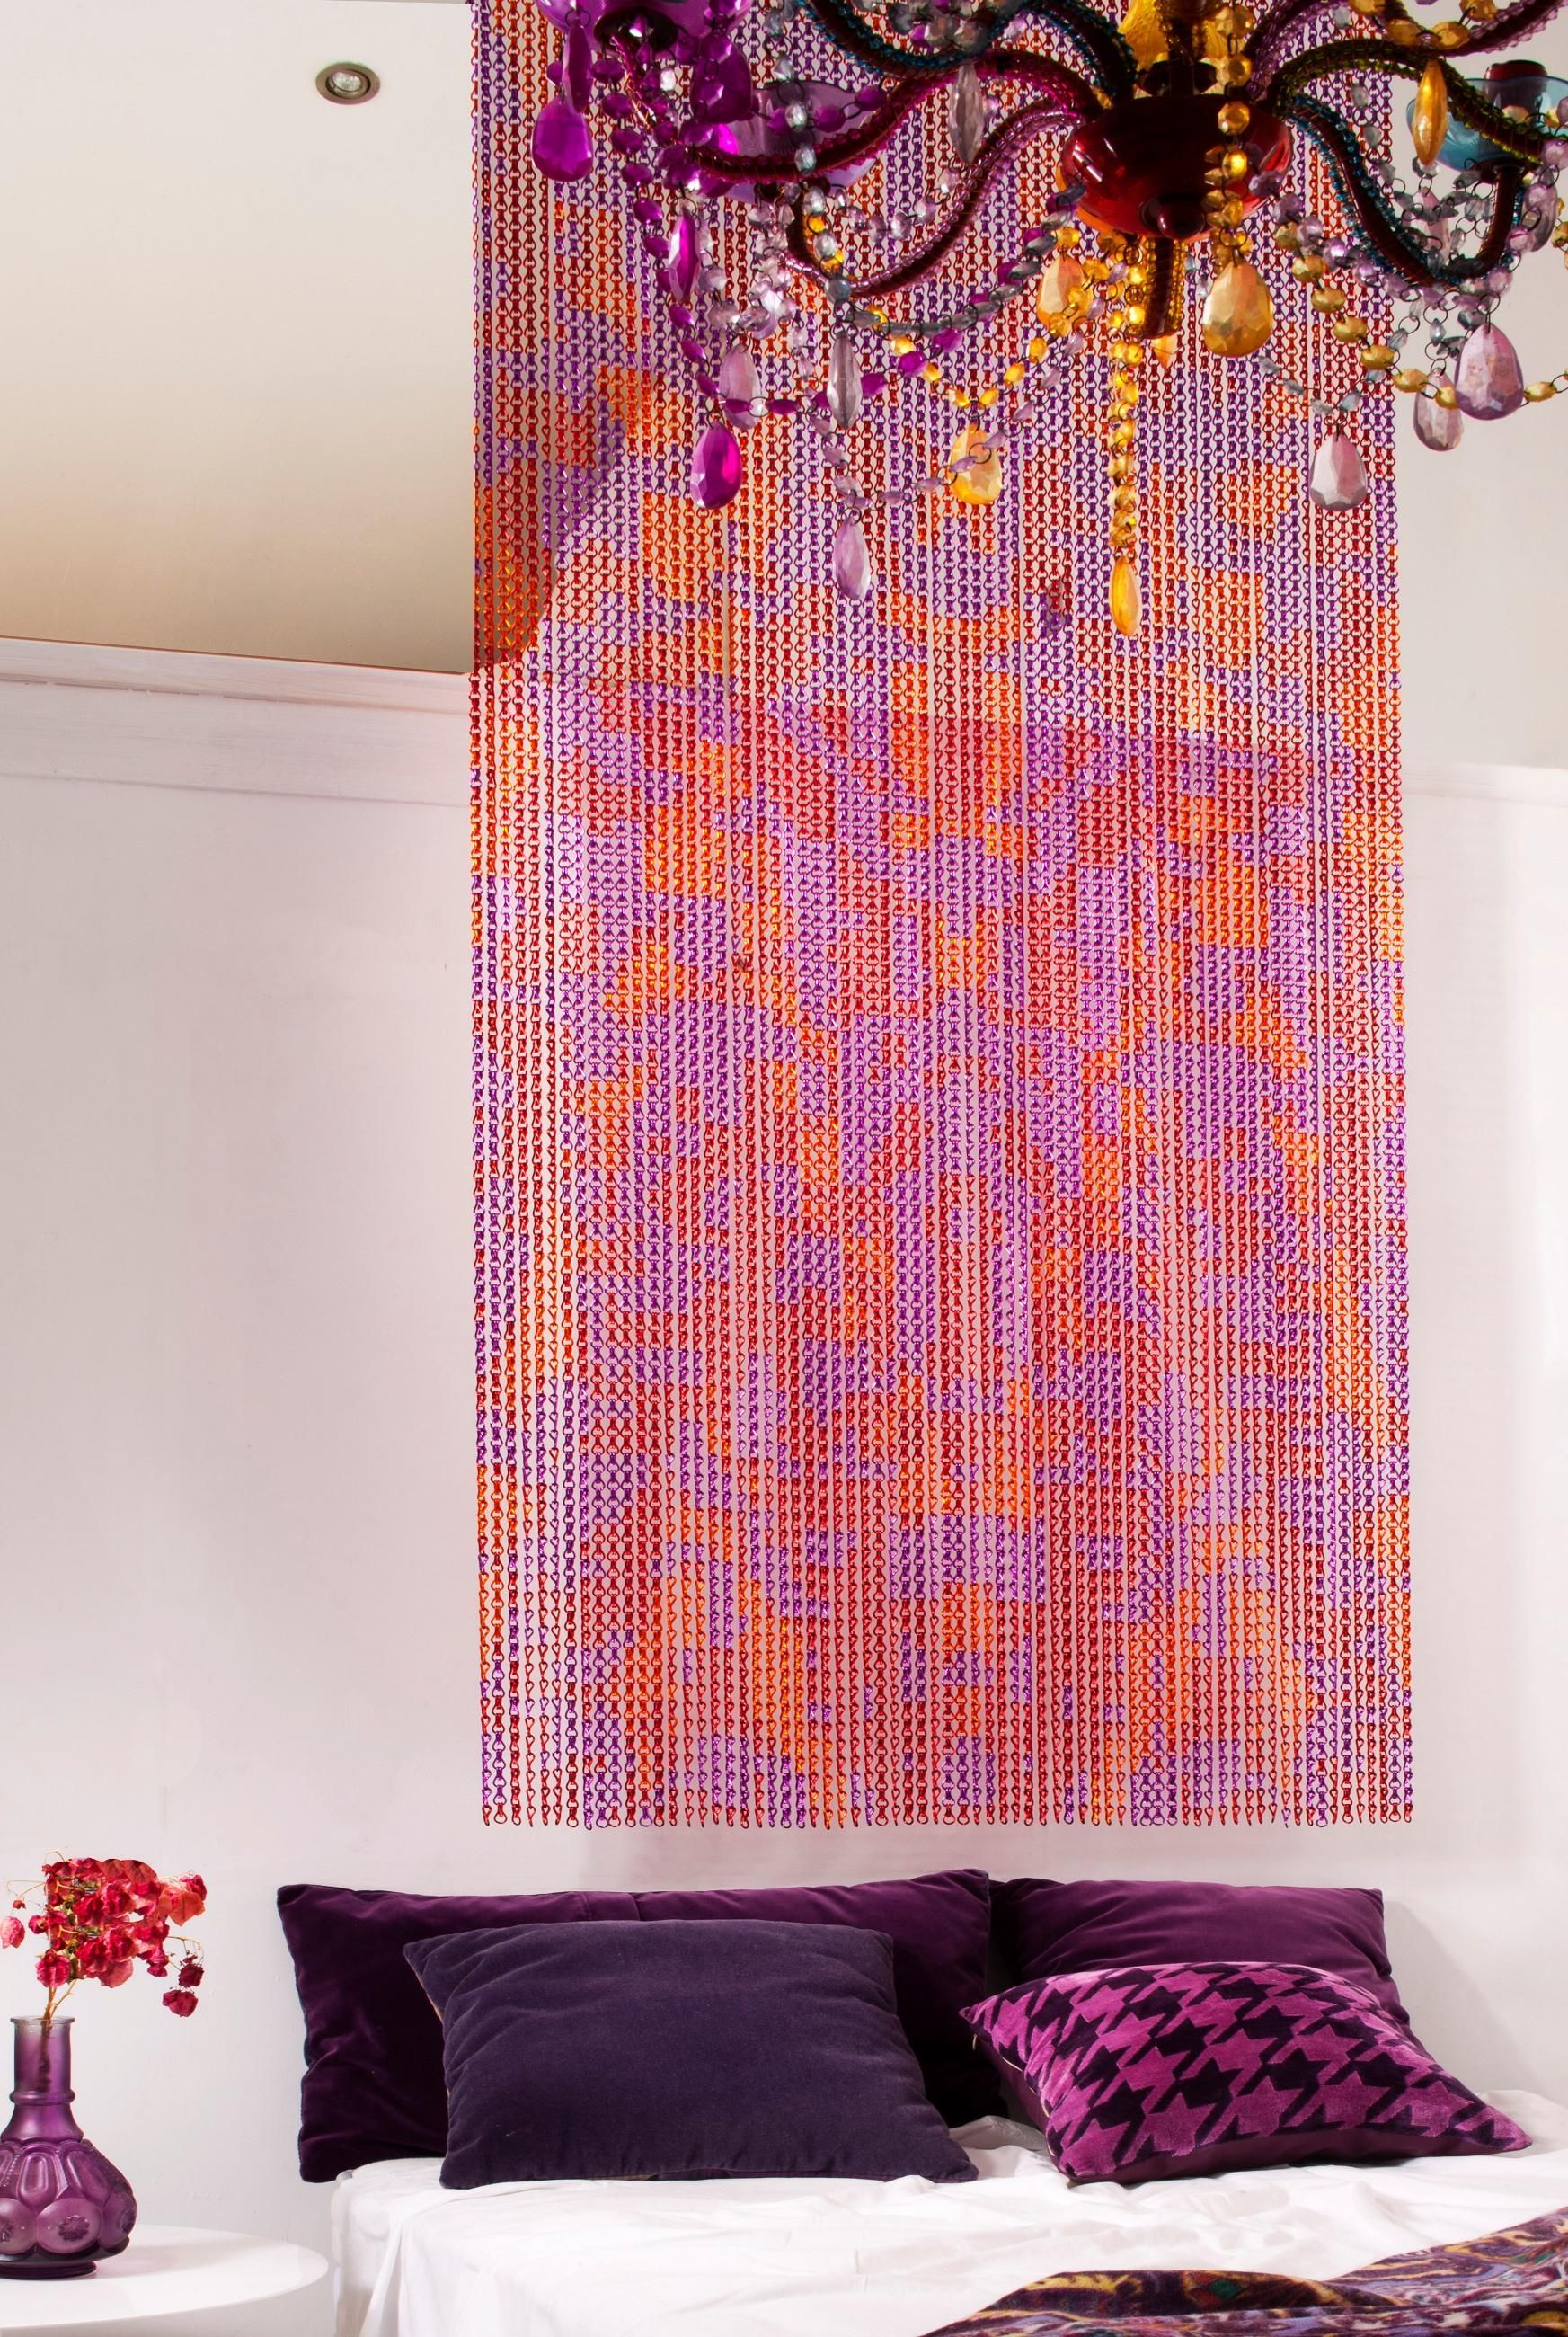 Chain curtain divider - Kriskadecor Launches A New Line Of Aluminium Chain Art Curtains And Dividers Ready To Install